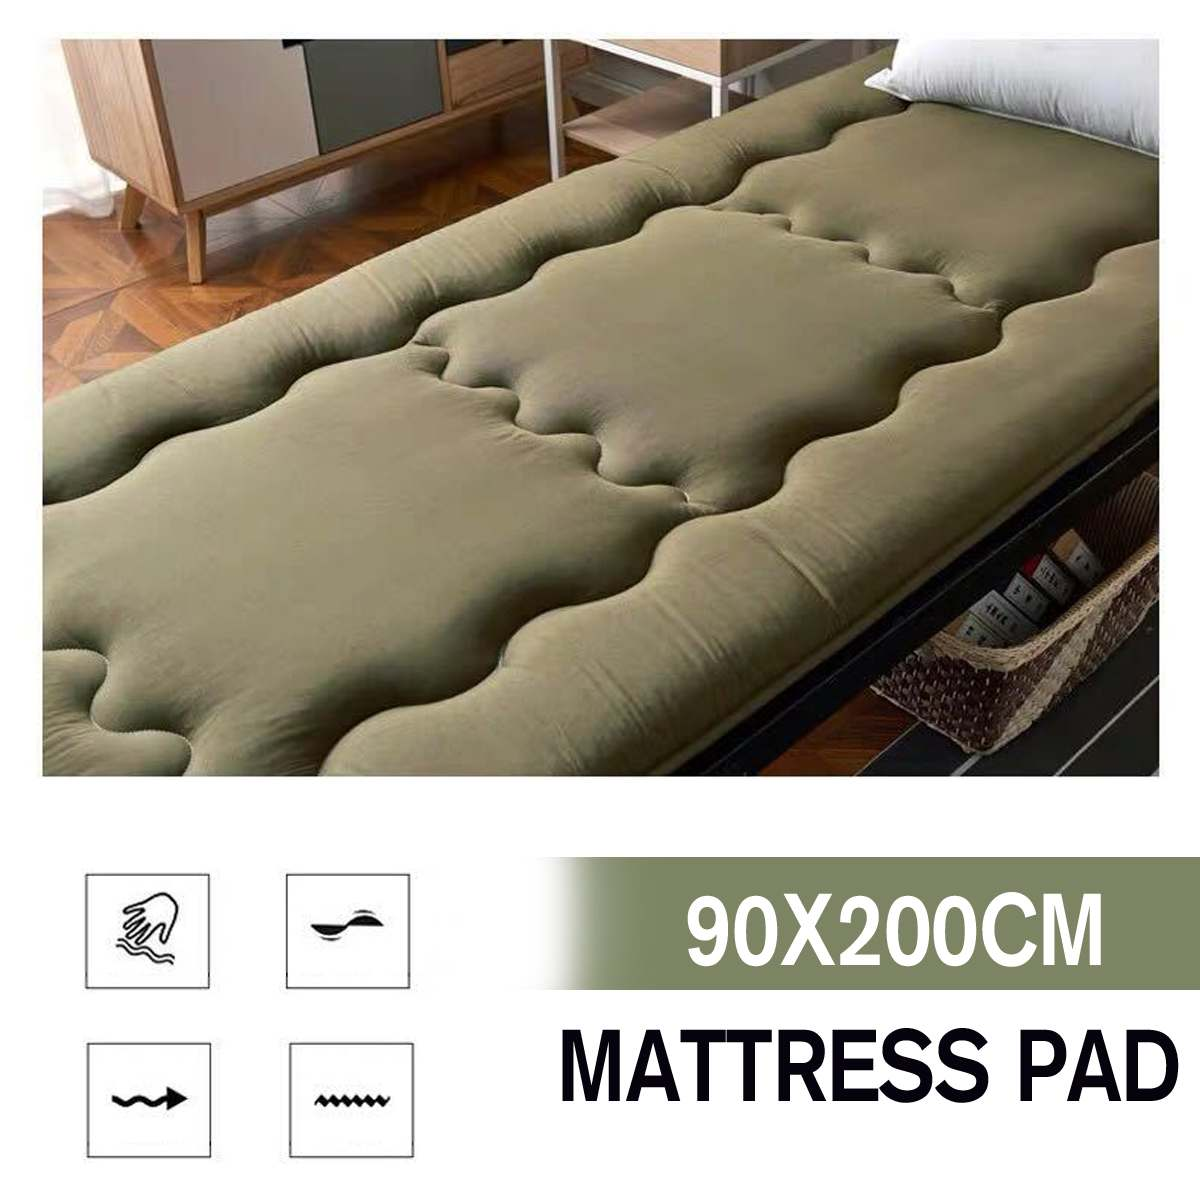 90x200cm Mattress Ergonomic Thickness Foldable Student Dormitory Mattresses Cotton Cover Tatami Single Bed Size